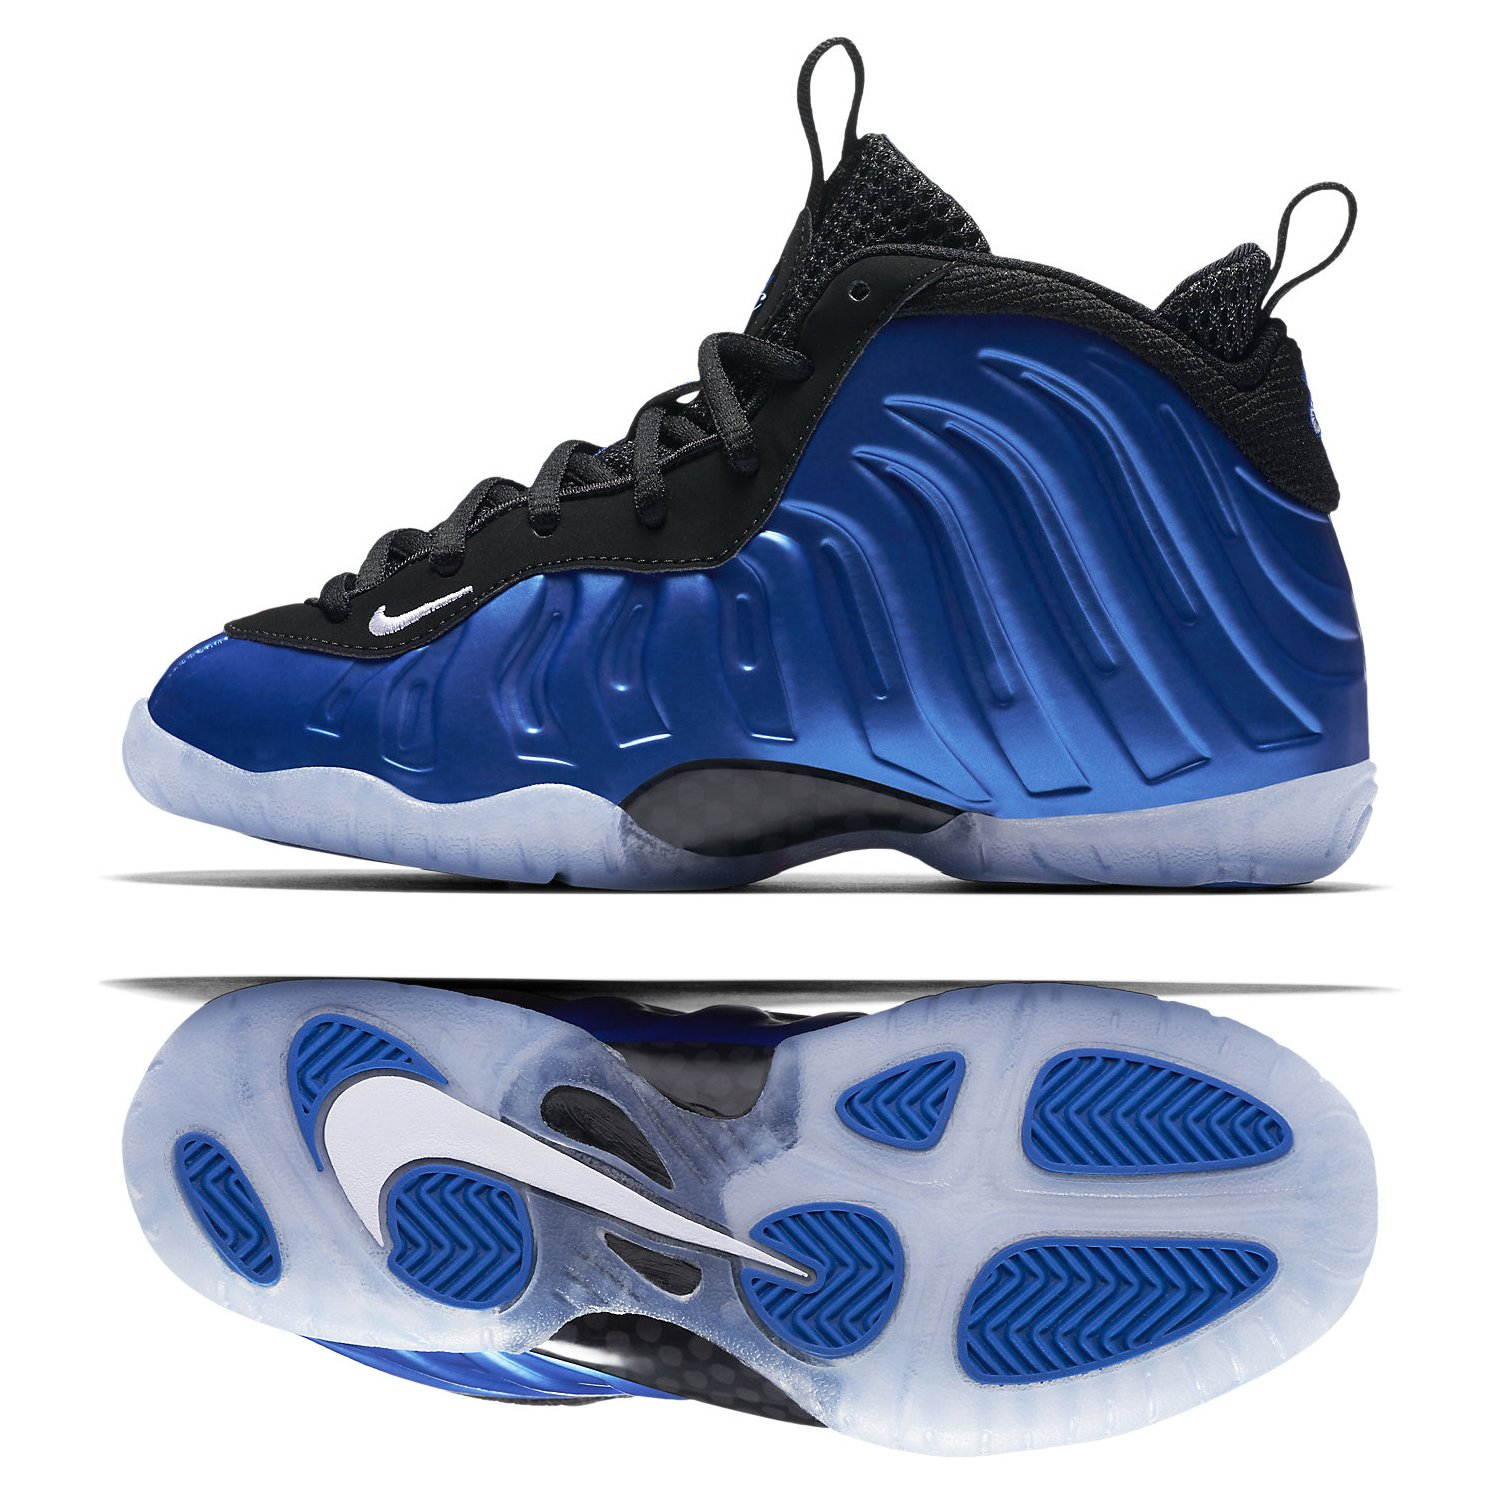 898062-500 PRESCHOOL LITTLE POSITE ONE XX (PS) NIKE DK NEON ROYAL